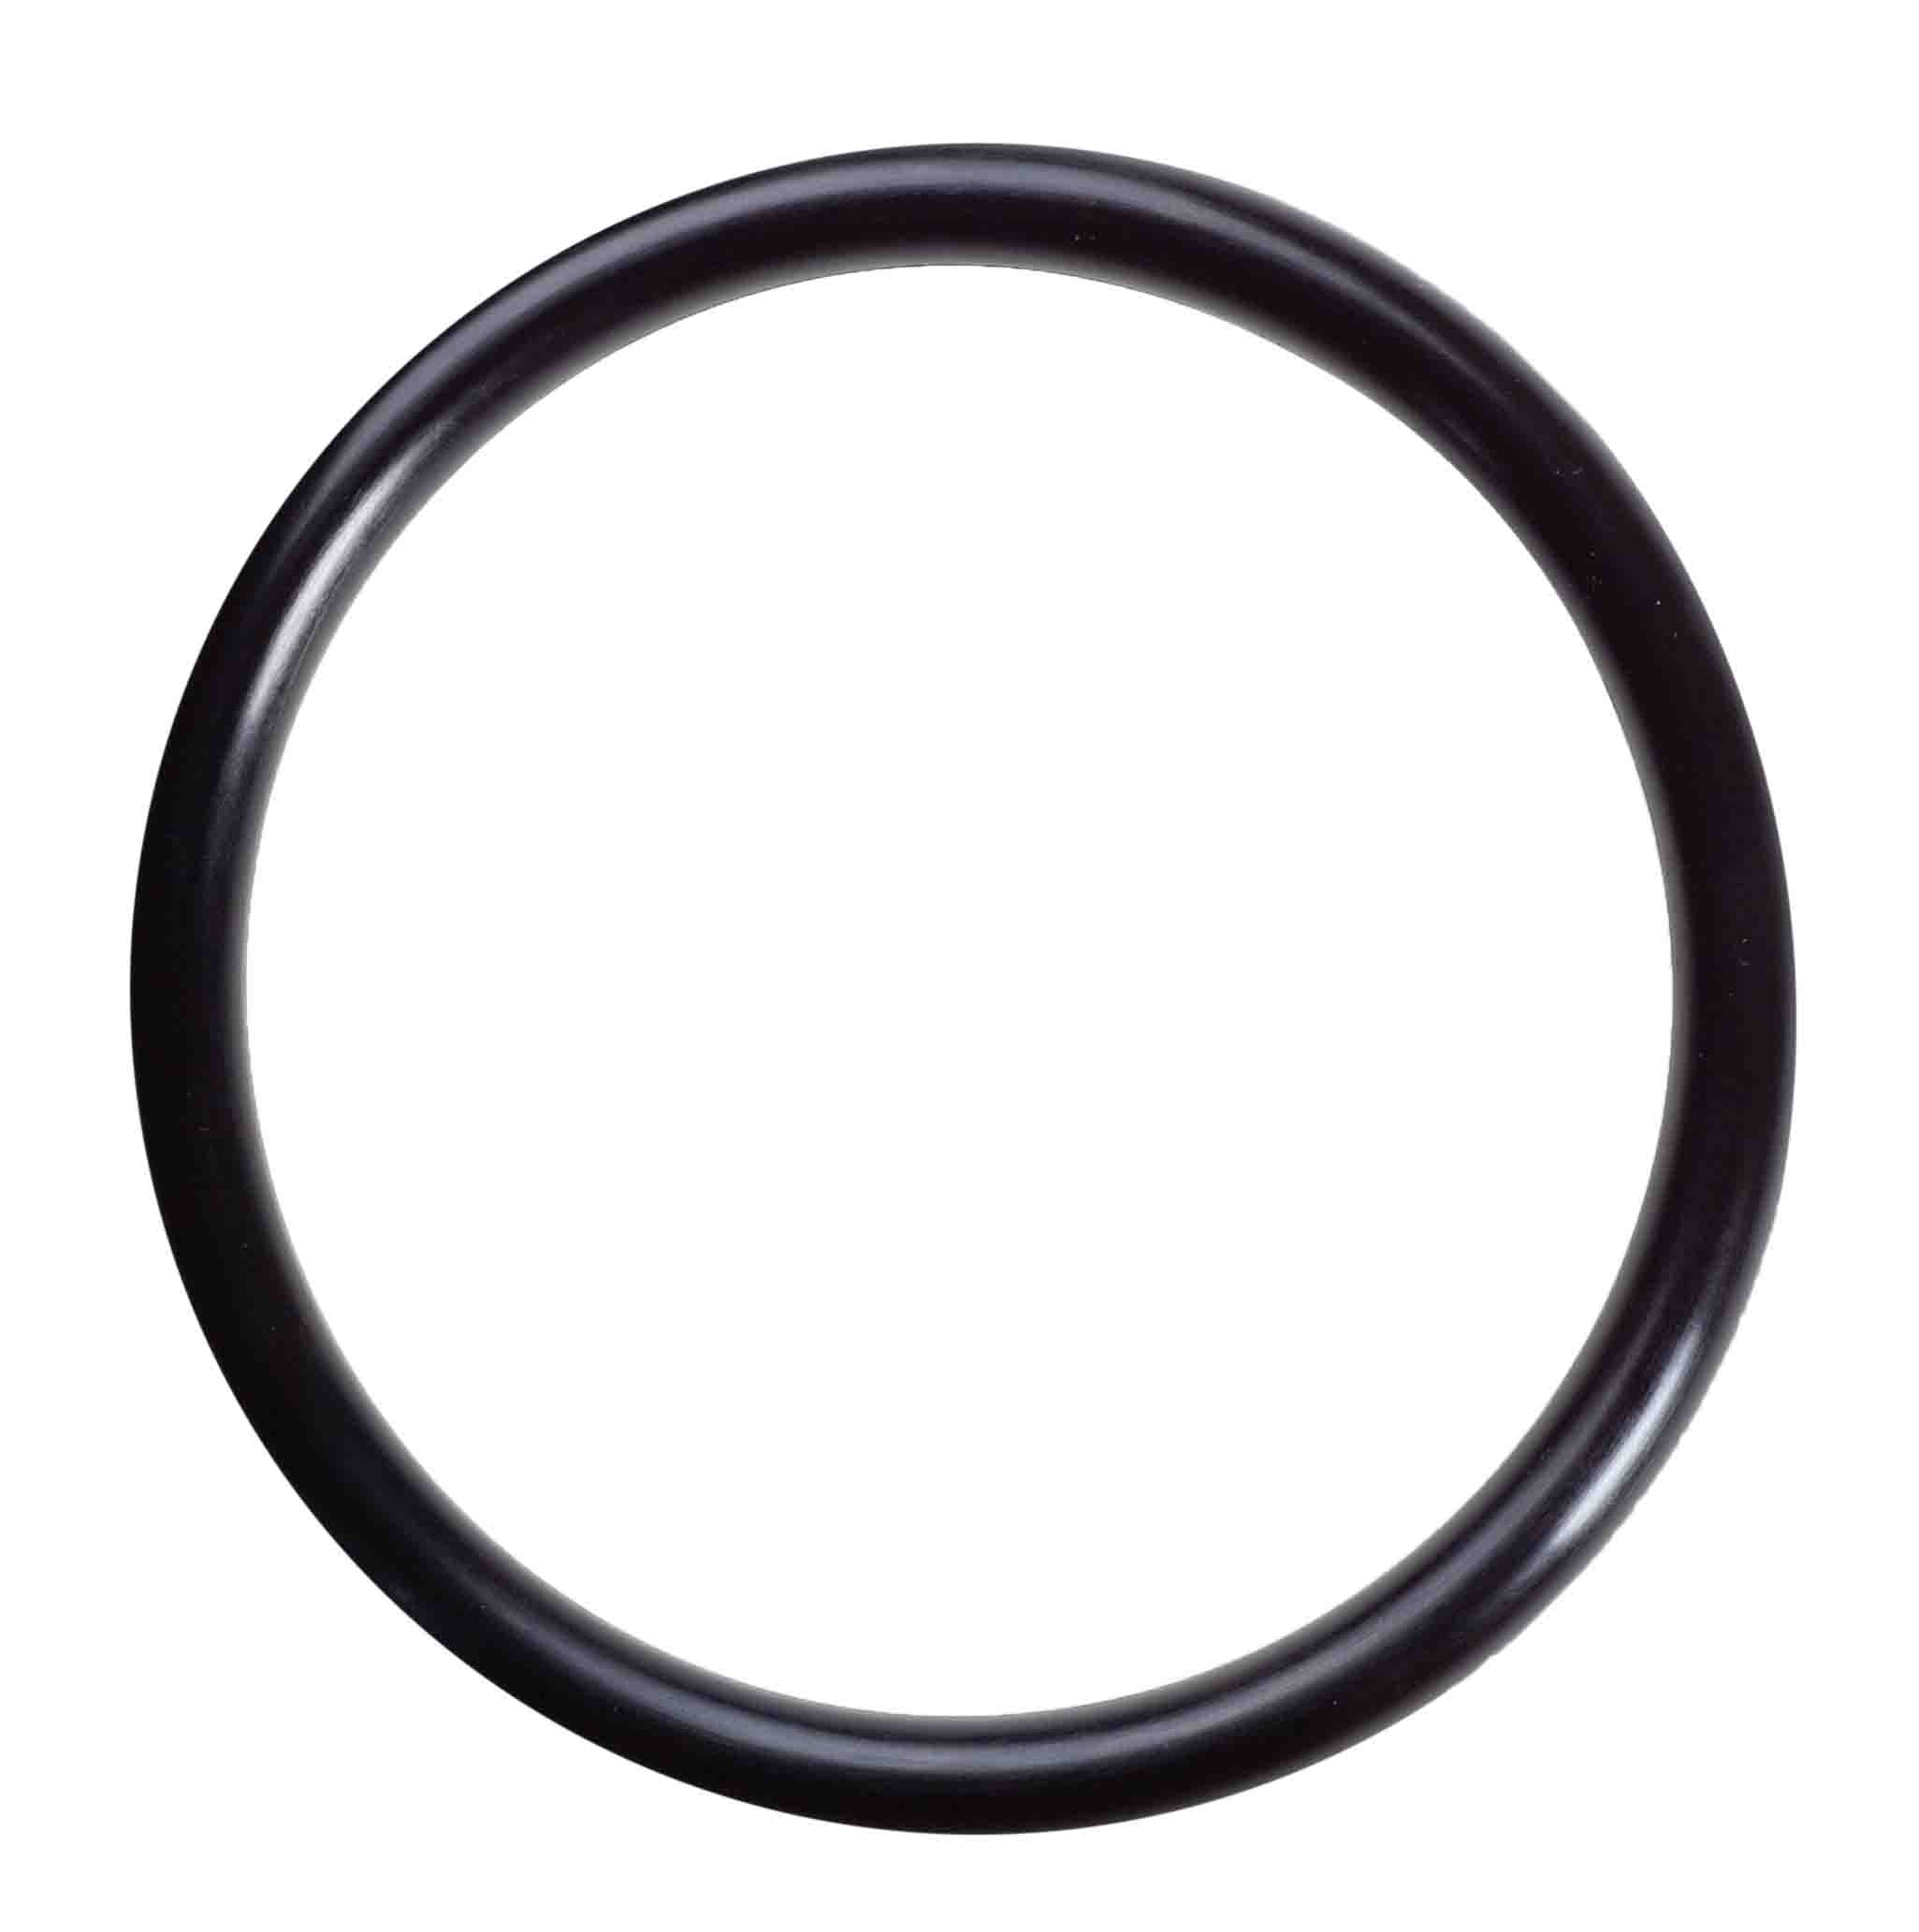 06808 Housing O-rings for Nanopure II system-  DISCONTINUED